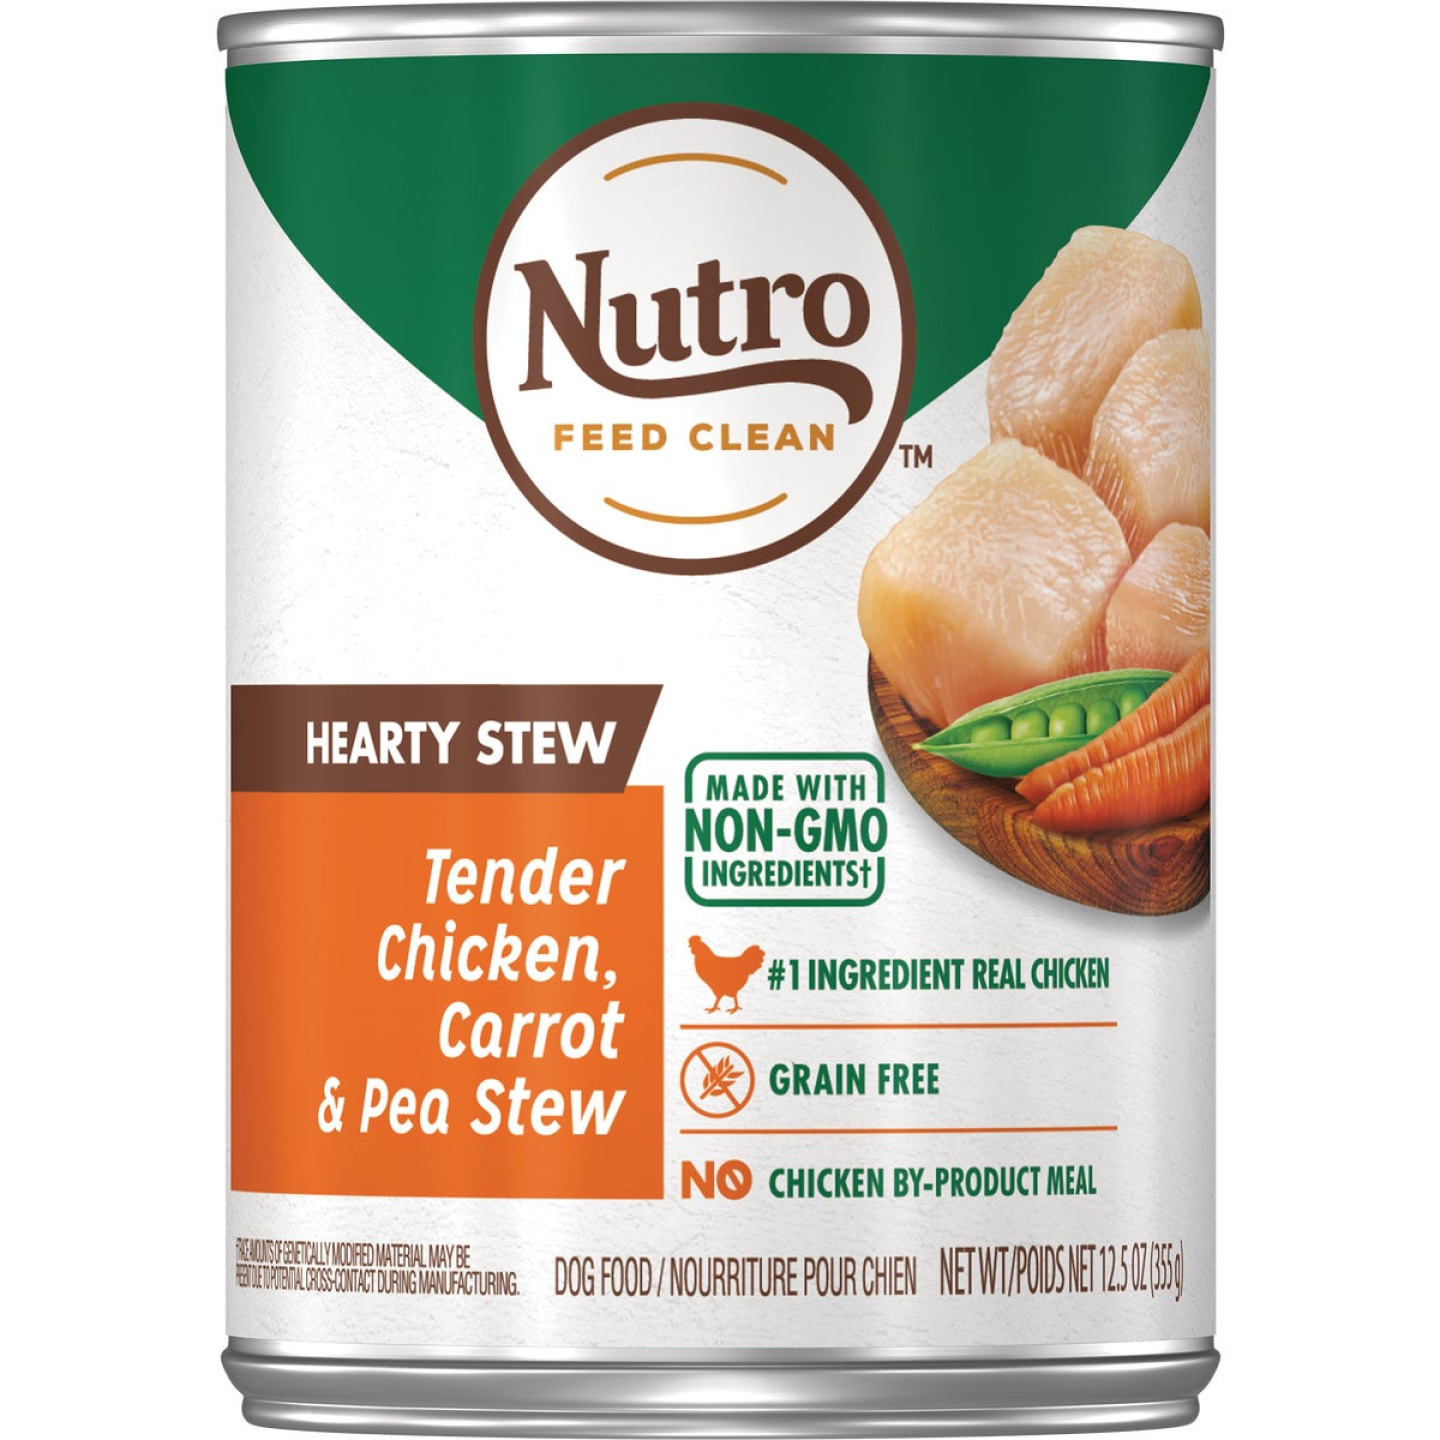 Nutro Grain Free Hearty Stew Tender Chicken, Carrot & Pea Adult Wet Dog Food, 12.5 Oz. Image 1